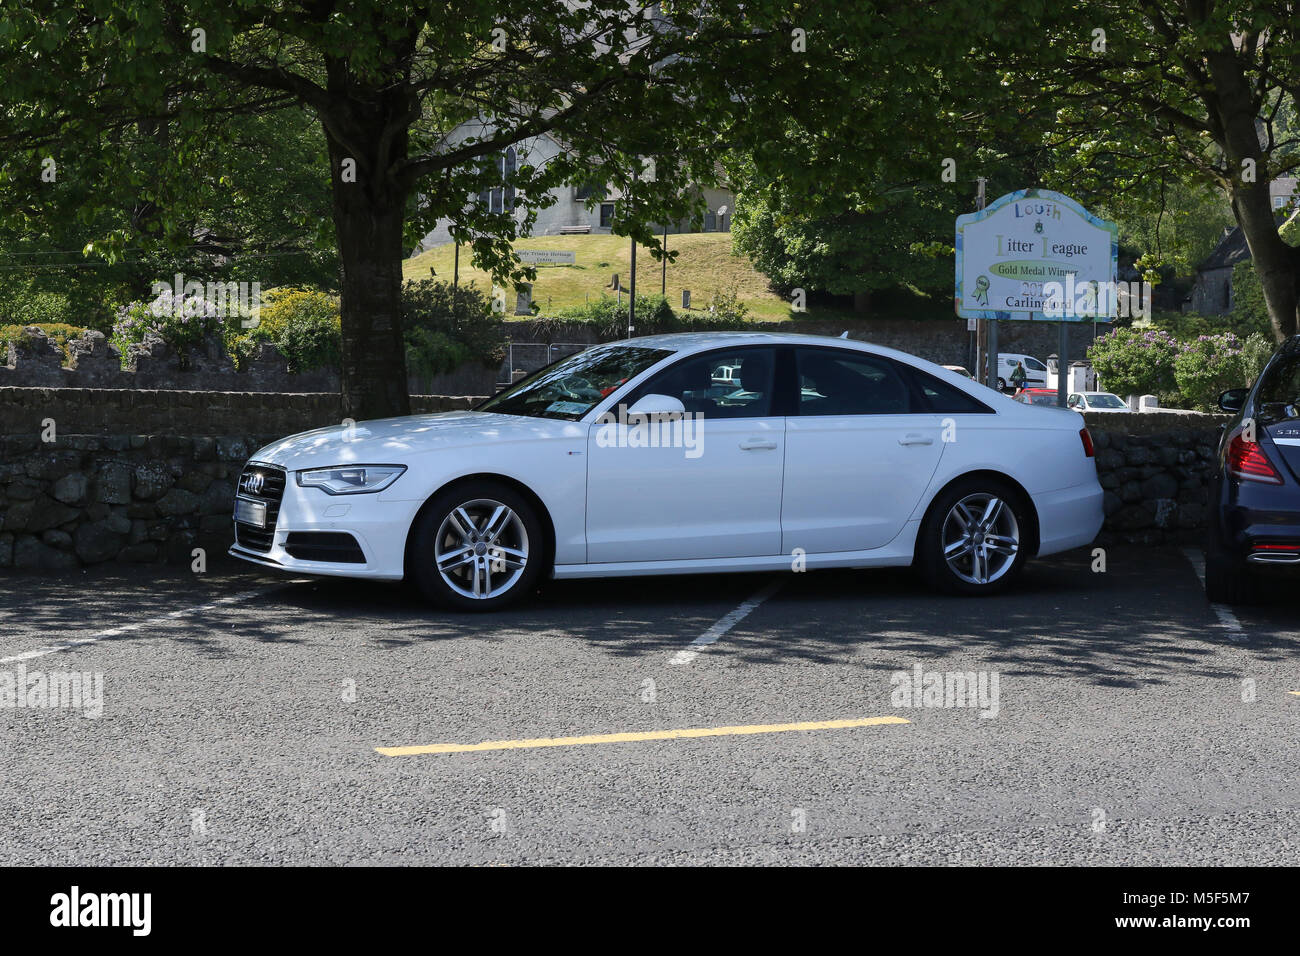 White Audi car badly parked across bays in car park. - Stock Image